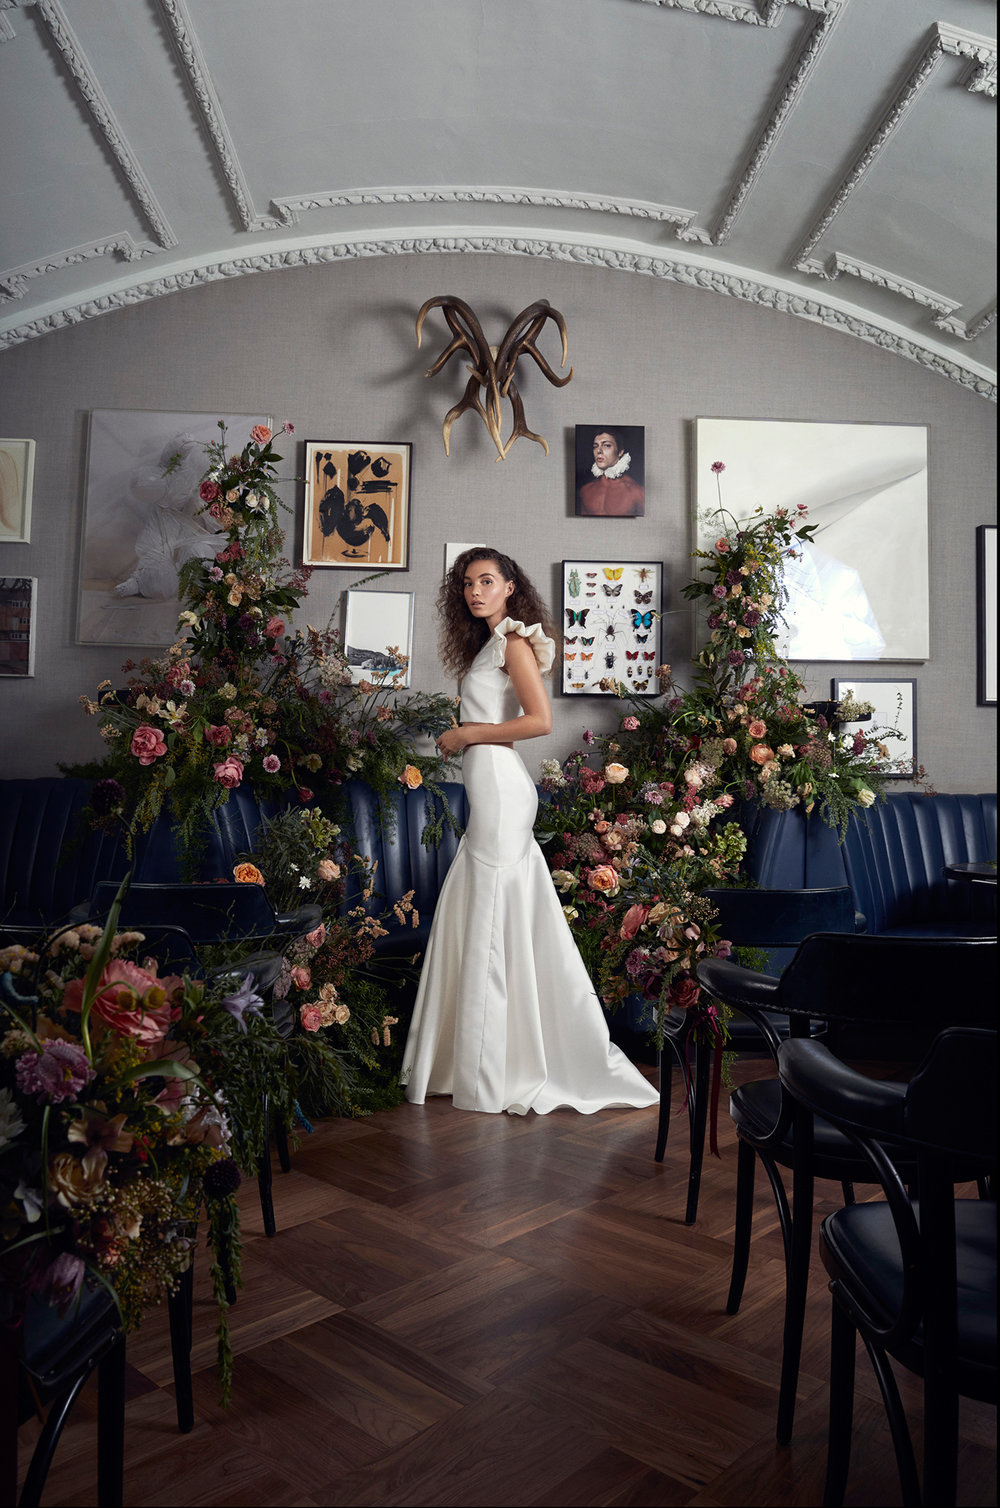 Halfpenny London wedding dresses at The Groucho Club | Image by Billie Scheepers